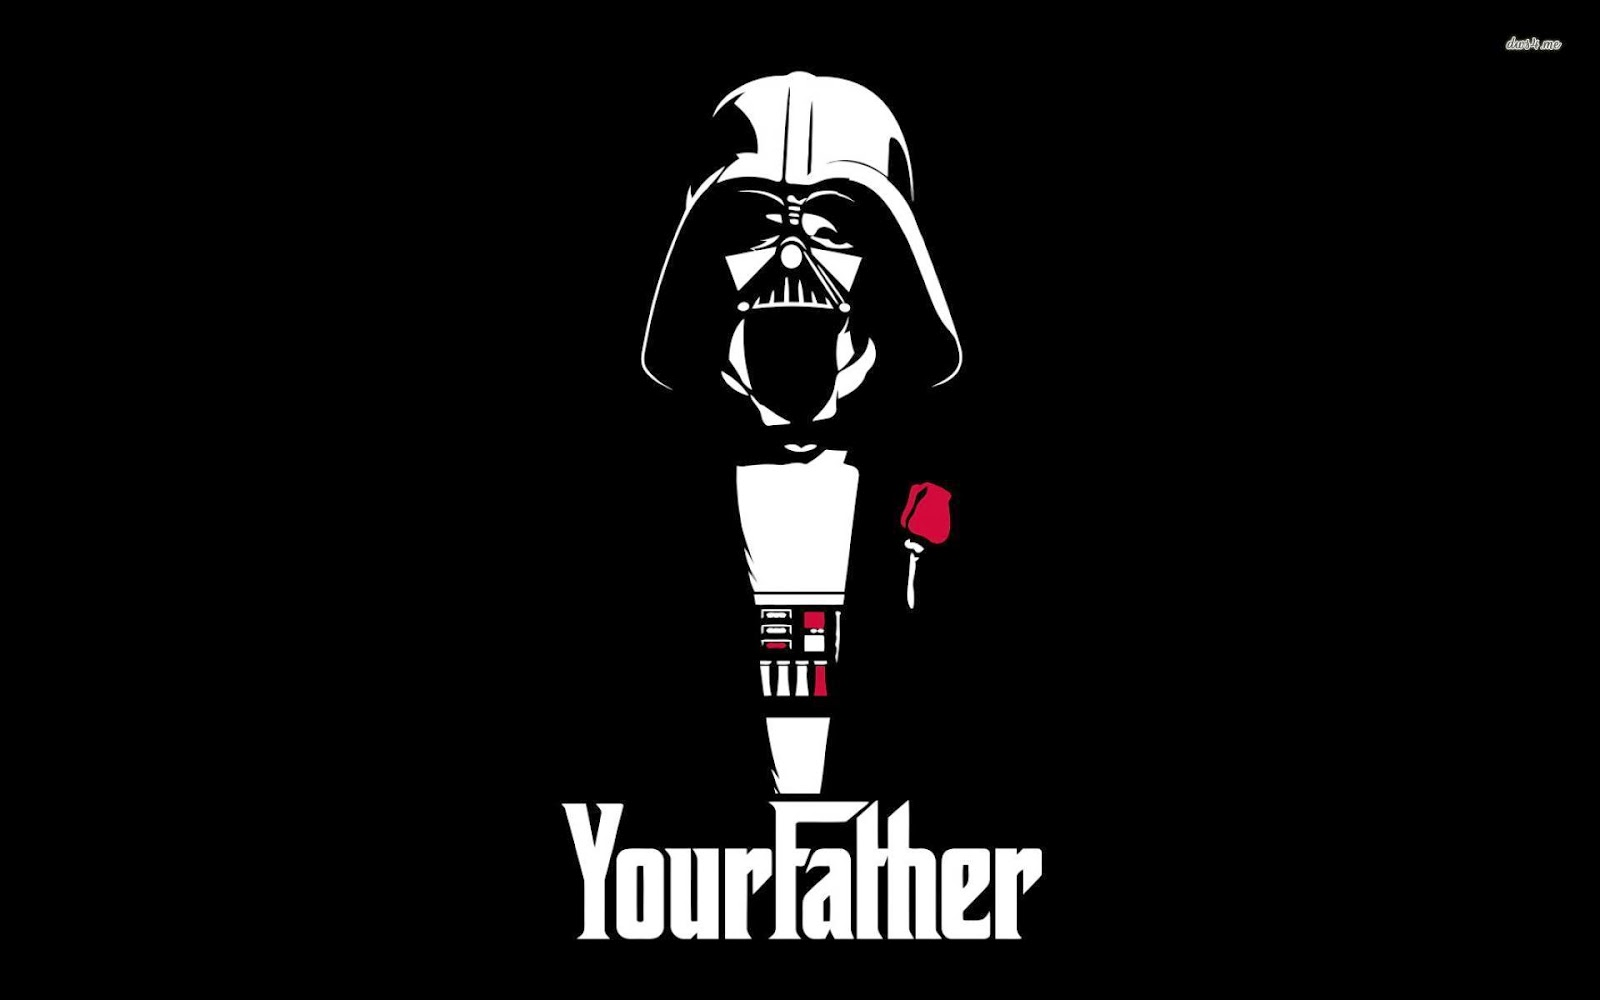 The Godfather Lord Vader Starwars Crossover